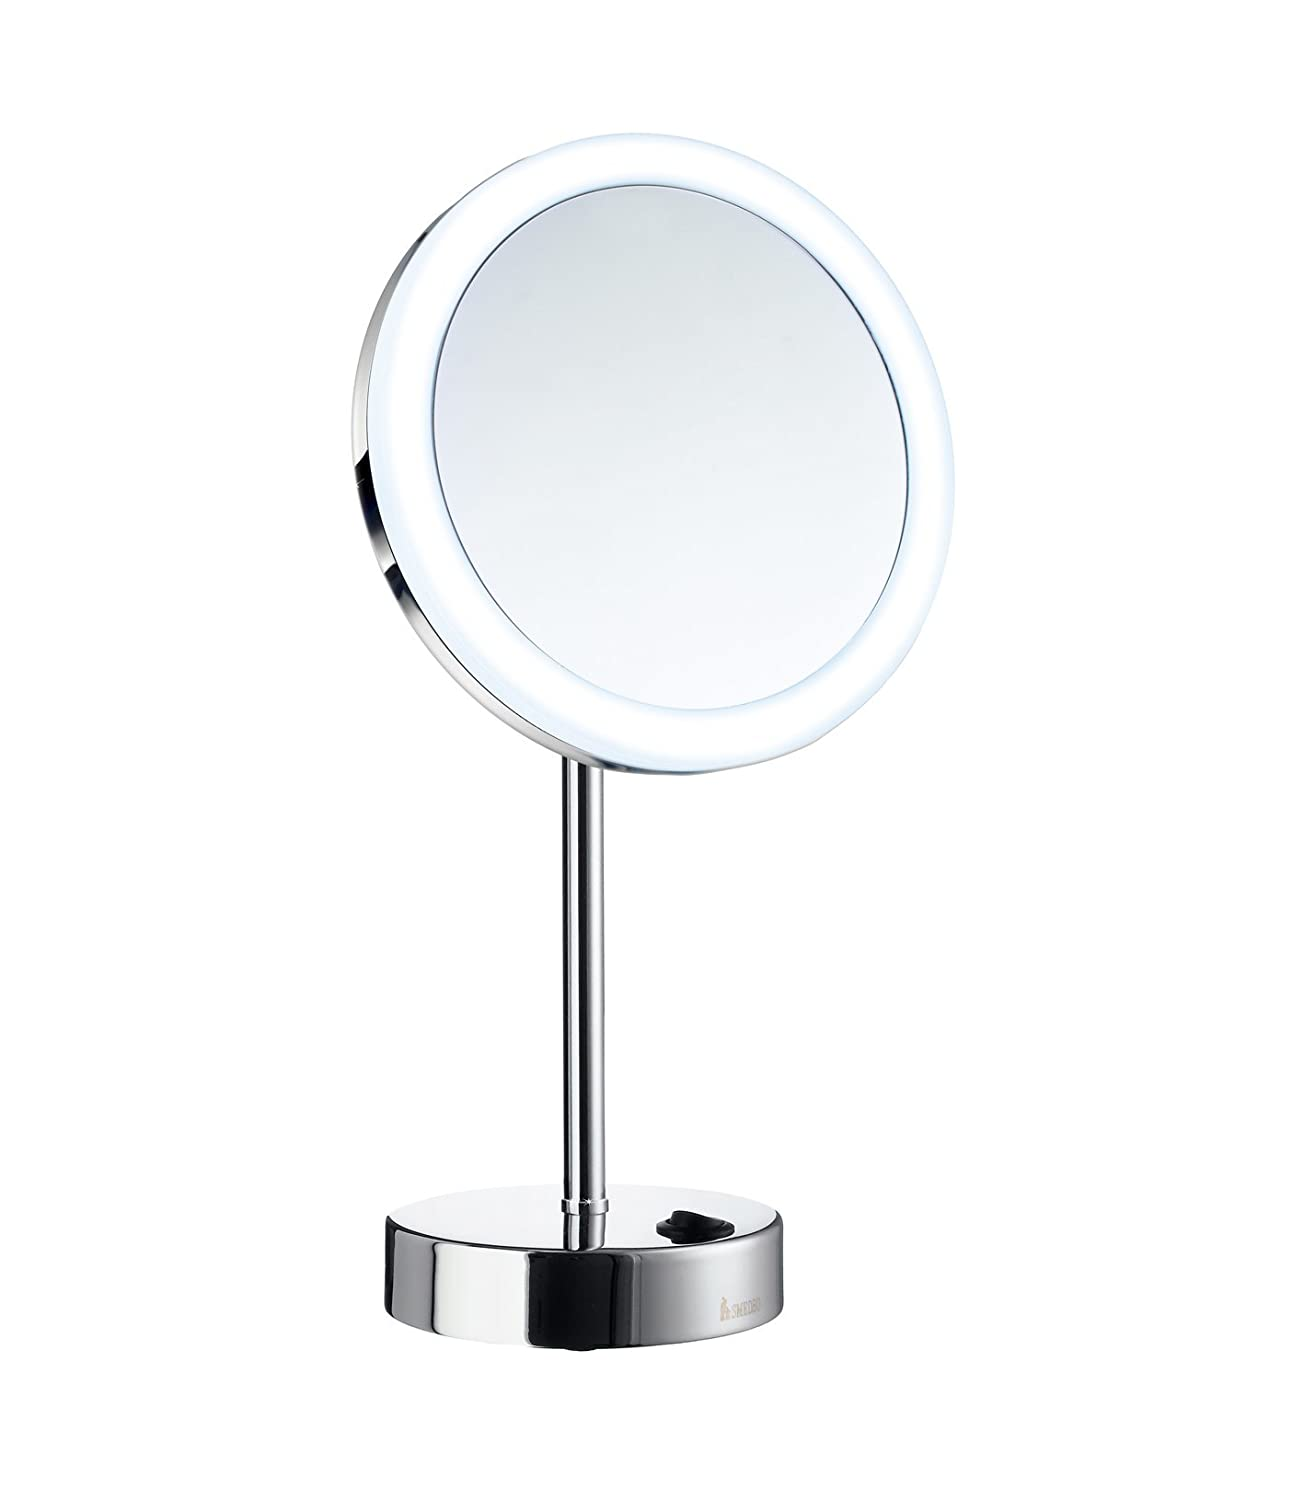 Smedbo Outline Shaving/Make-up Mirror LED Battery, Brass/Copper/Zinc Alloy, Polished Chrome FK484E